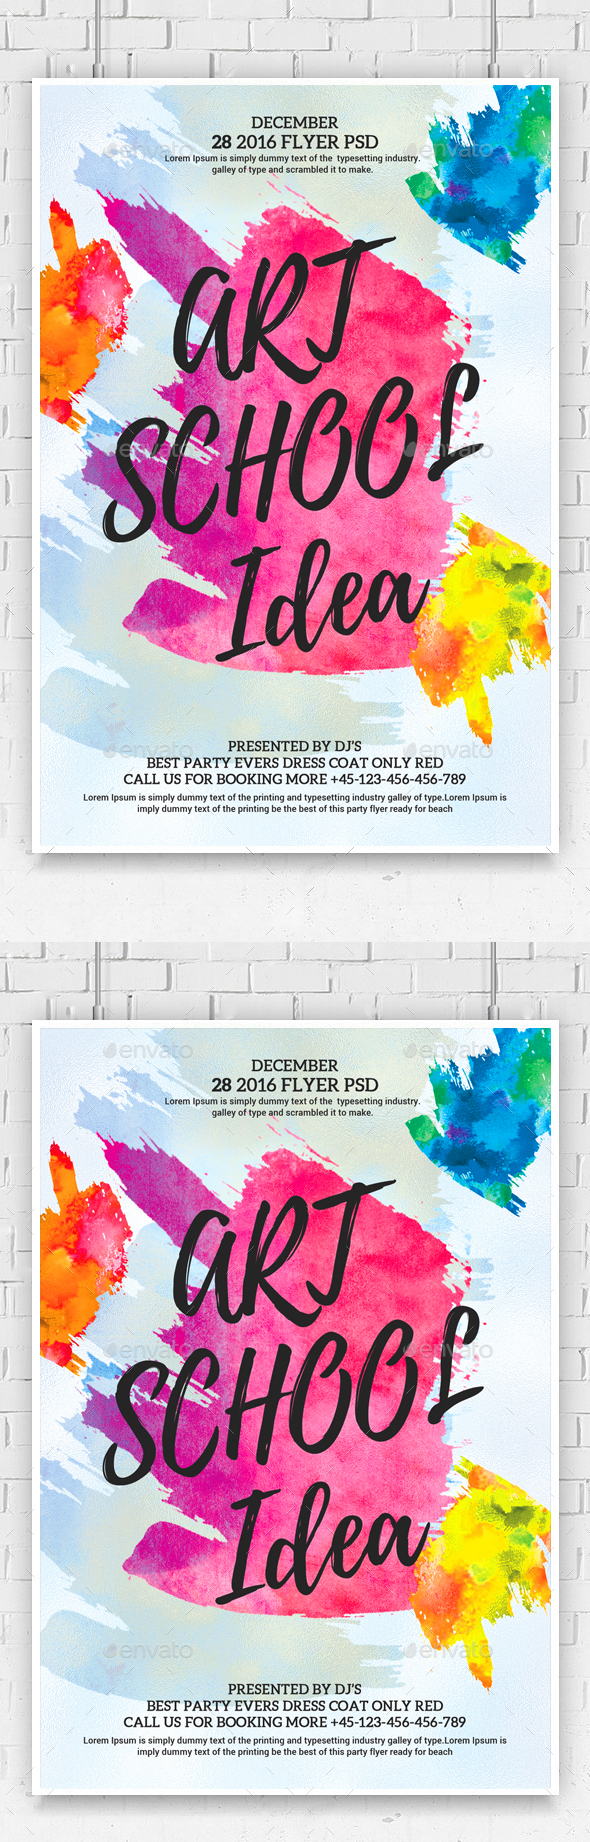 pen stationery and design templates from graphicriver